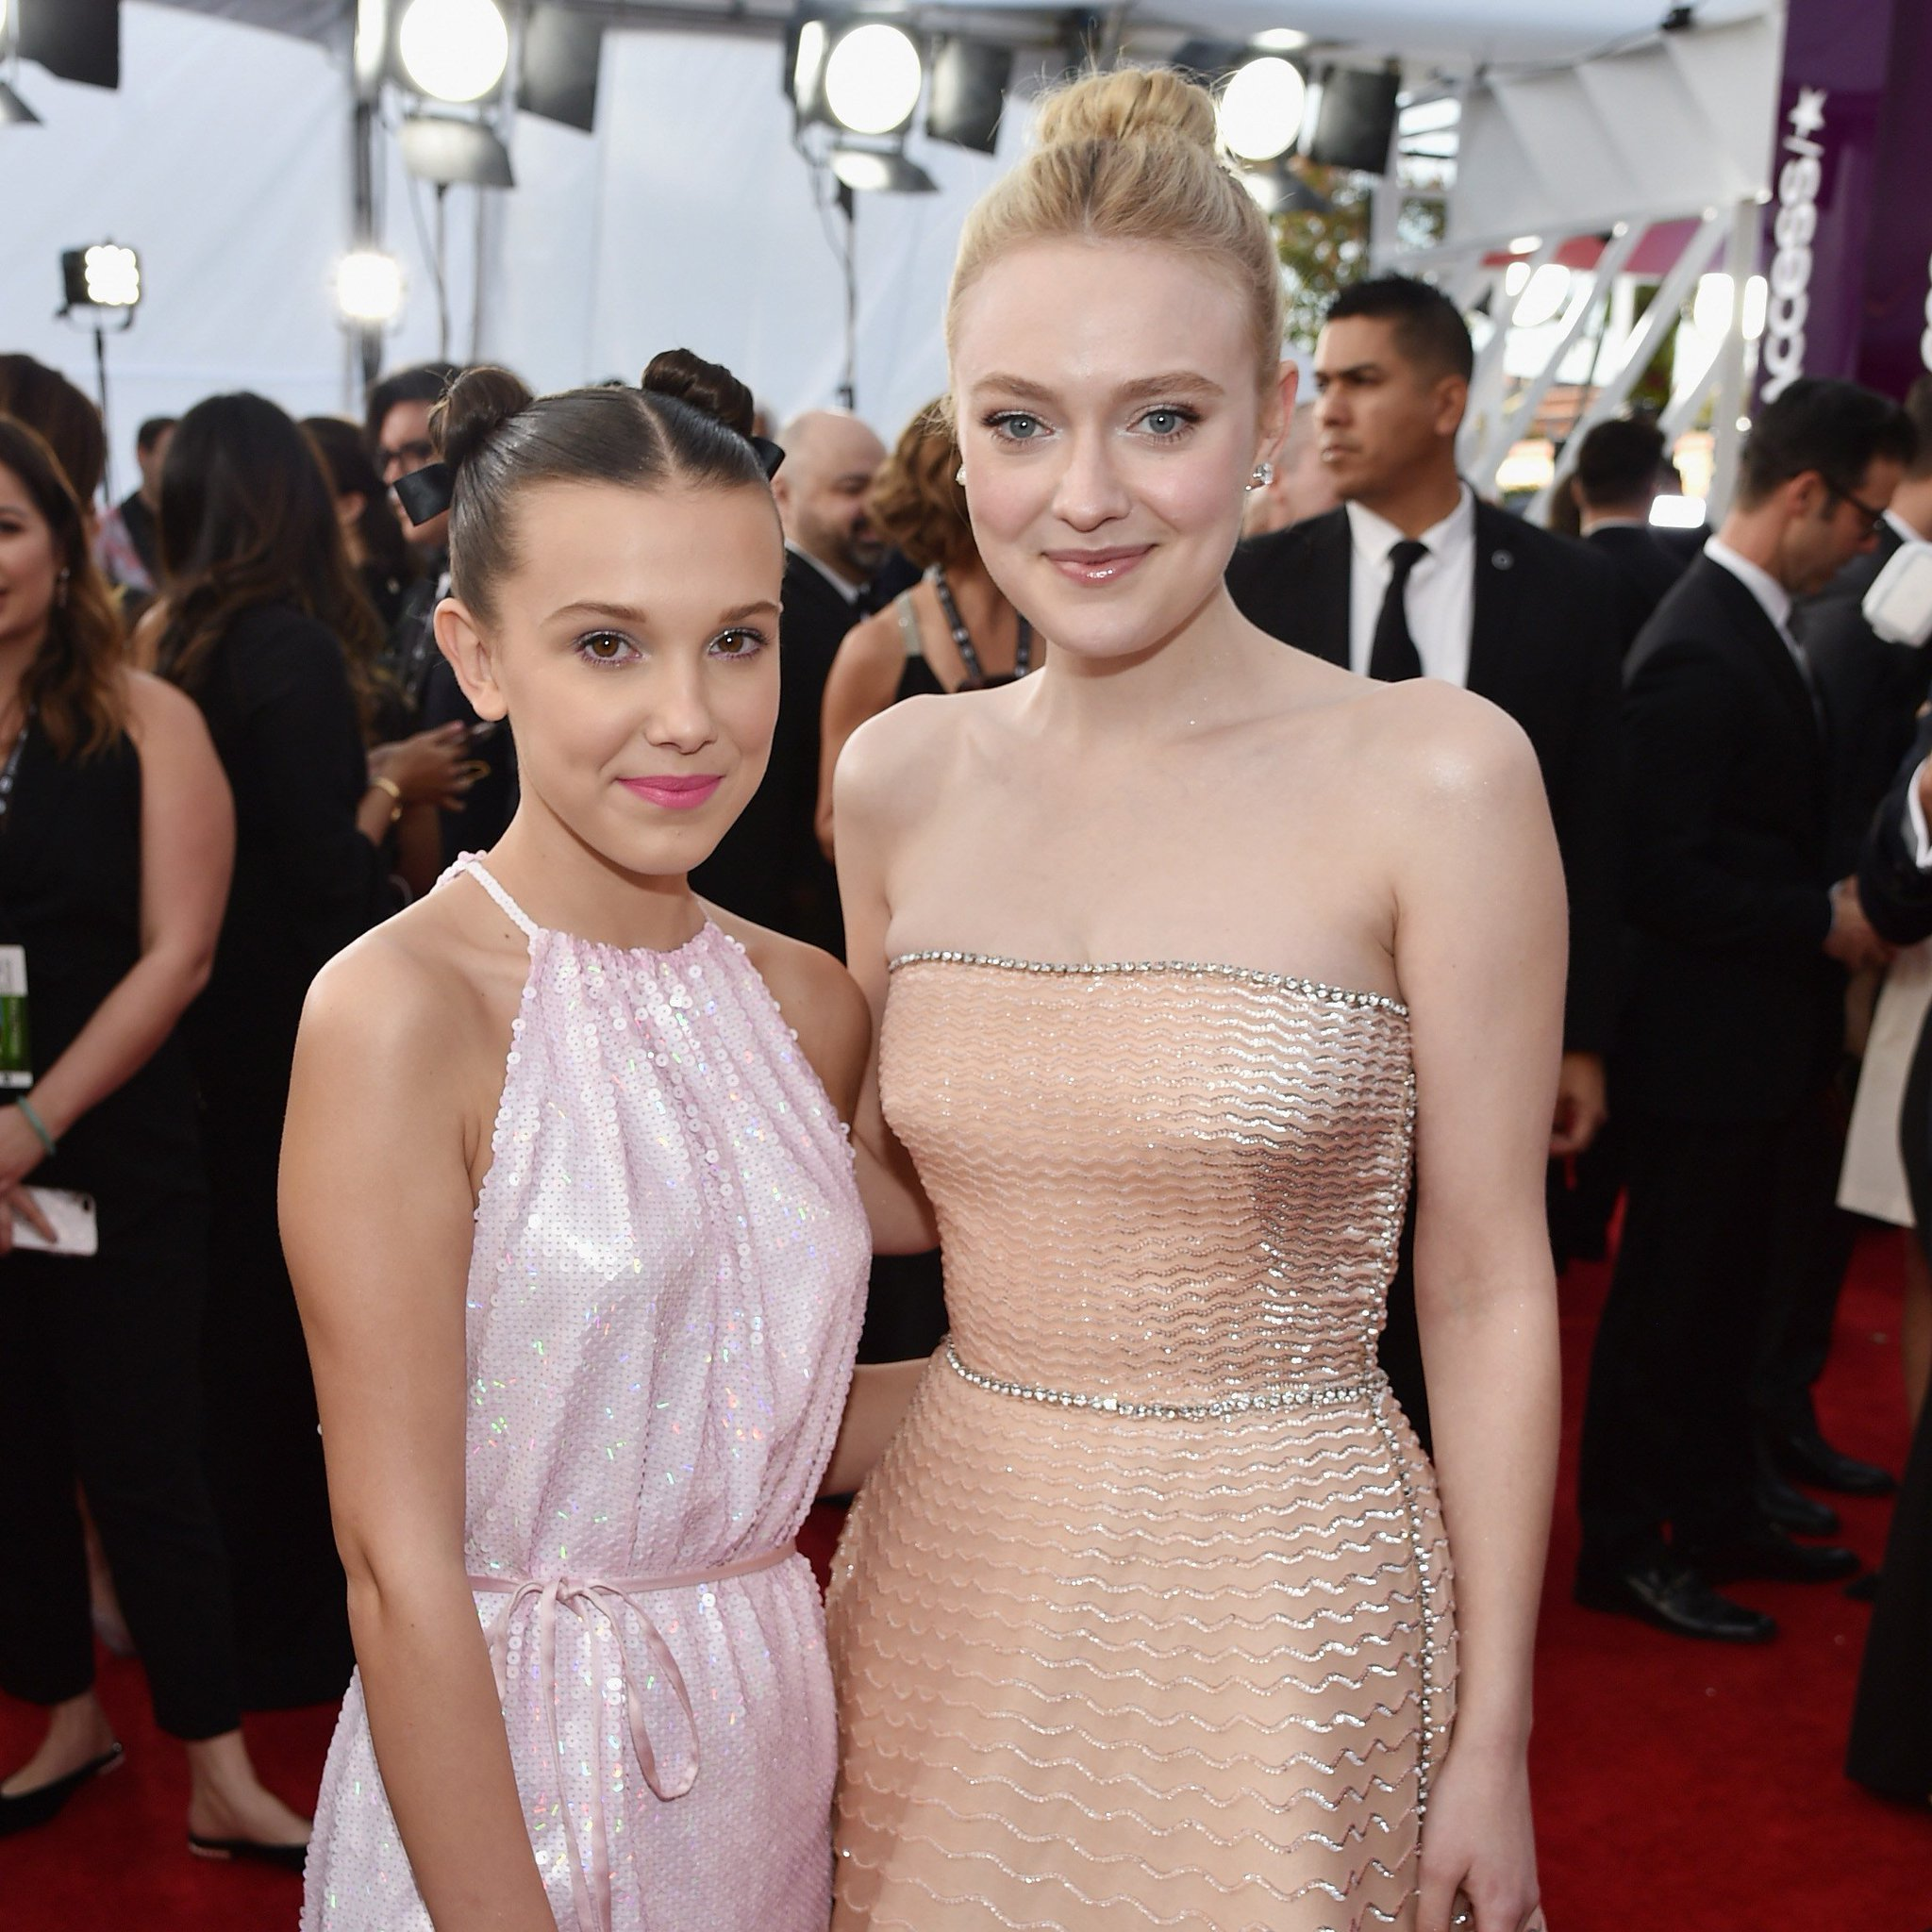 .@MillieBBrown and Dakota Fanning had a mutual fangirling moment: https://t.co/nkEgCK78eQ https://t.co/kHdSmfF64Y